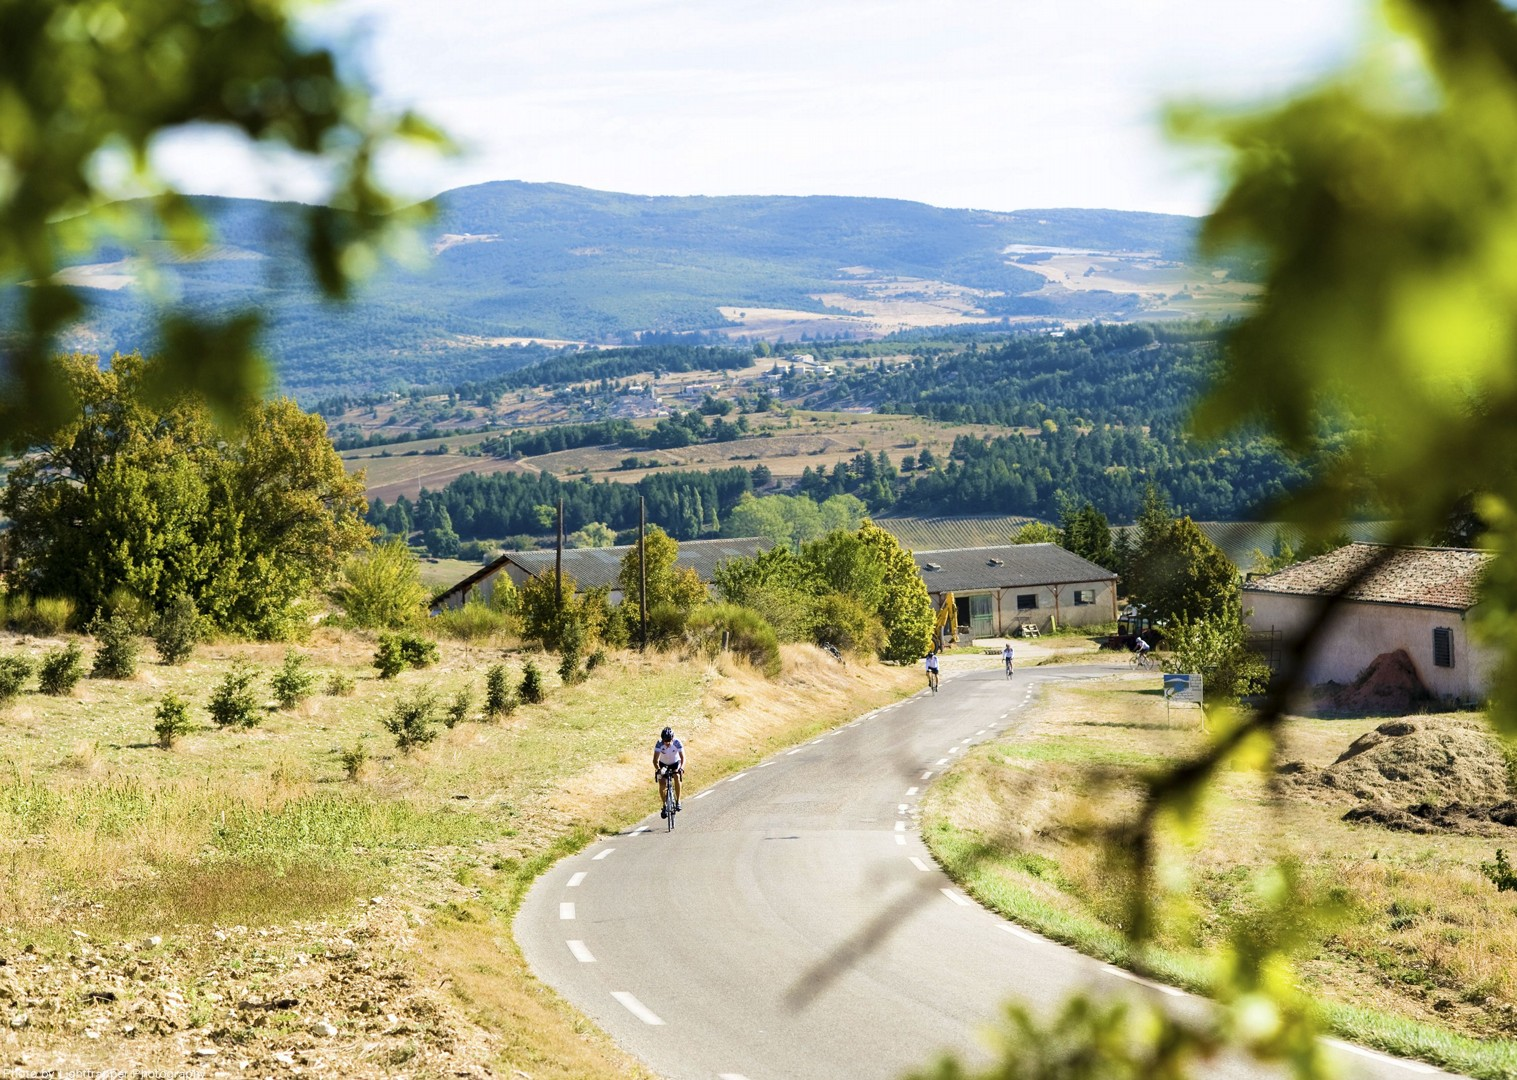 hills-of-beaujolais-france-road-holiday-bikes.jpg - NEW! France - Alsace, Burgundy and Beaujolais - Road Cycling